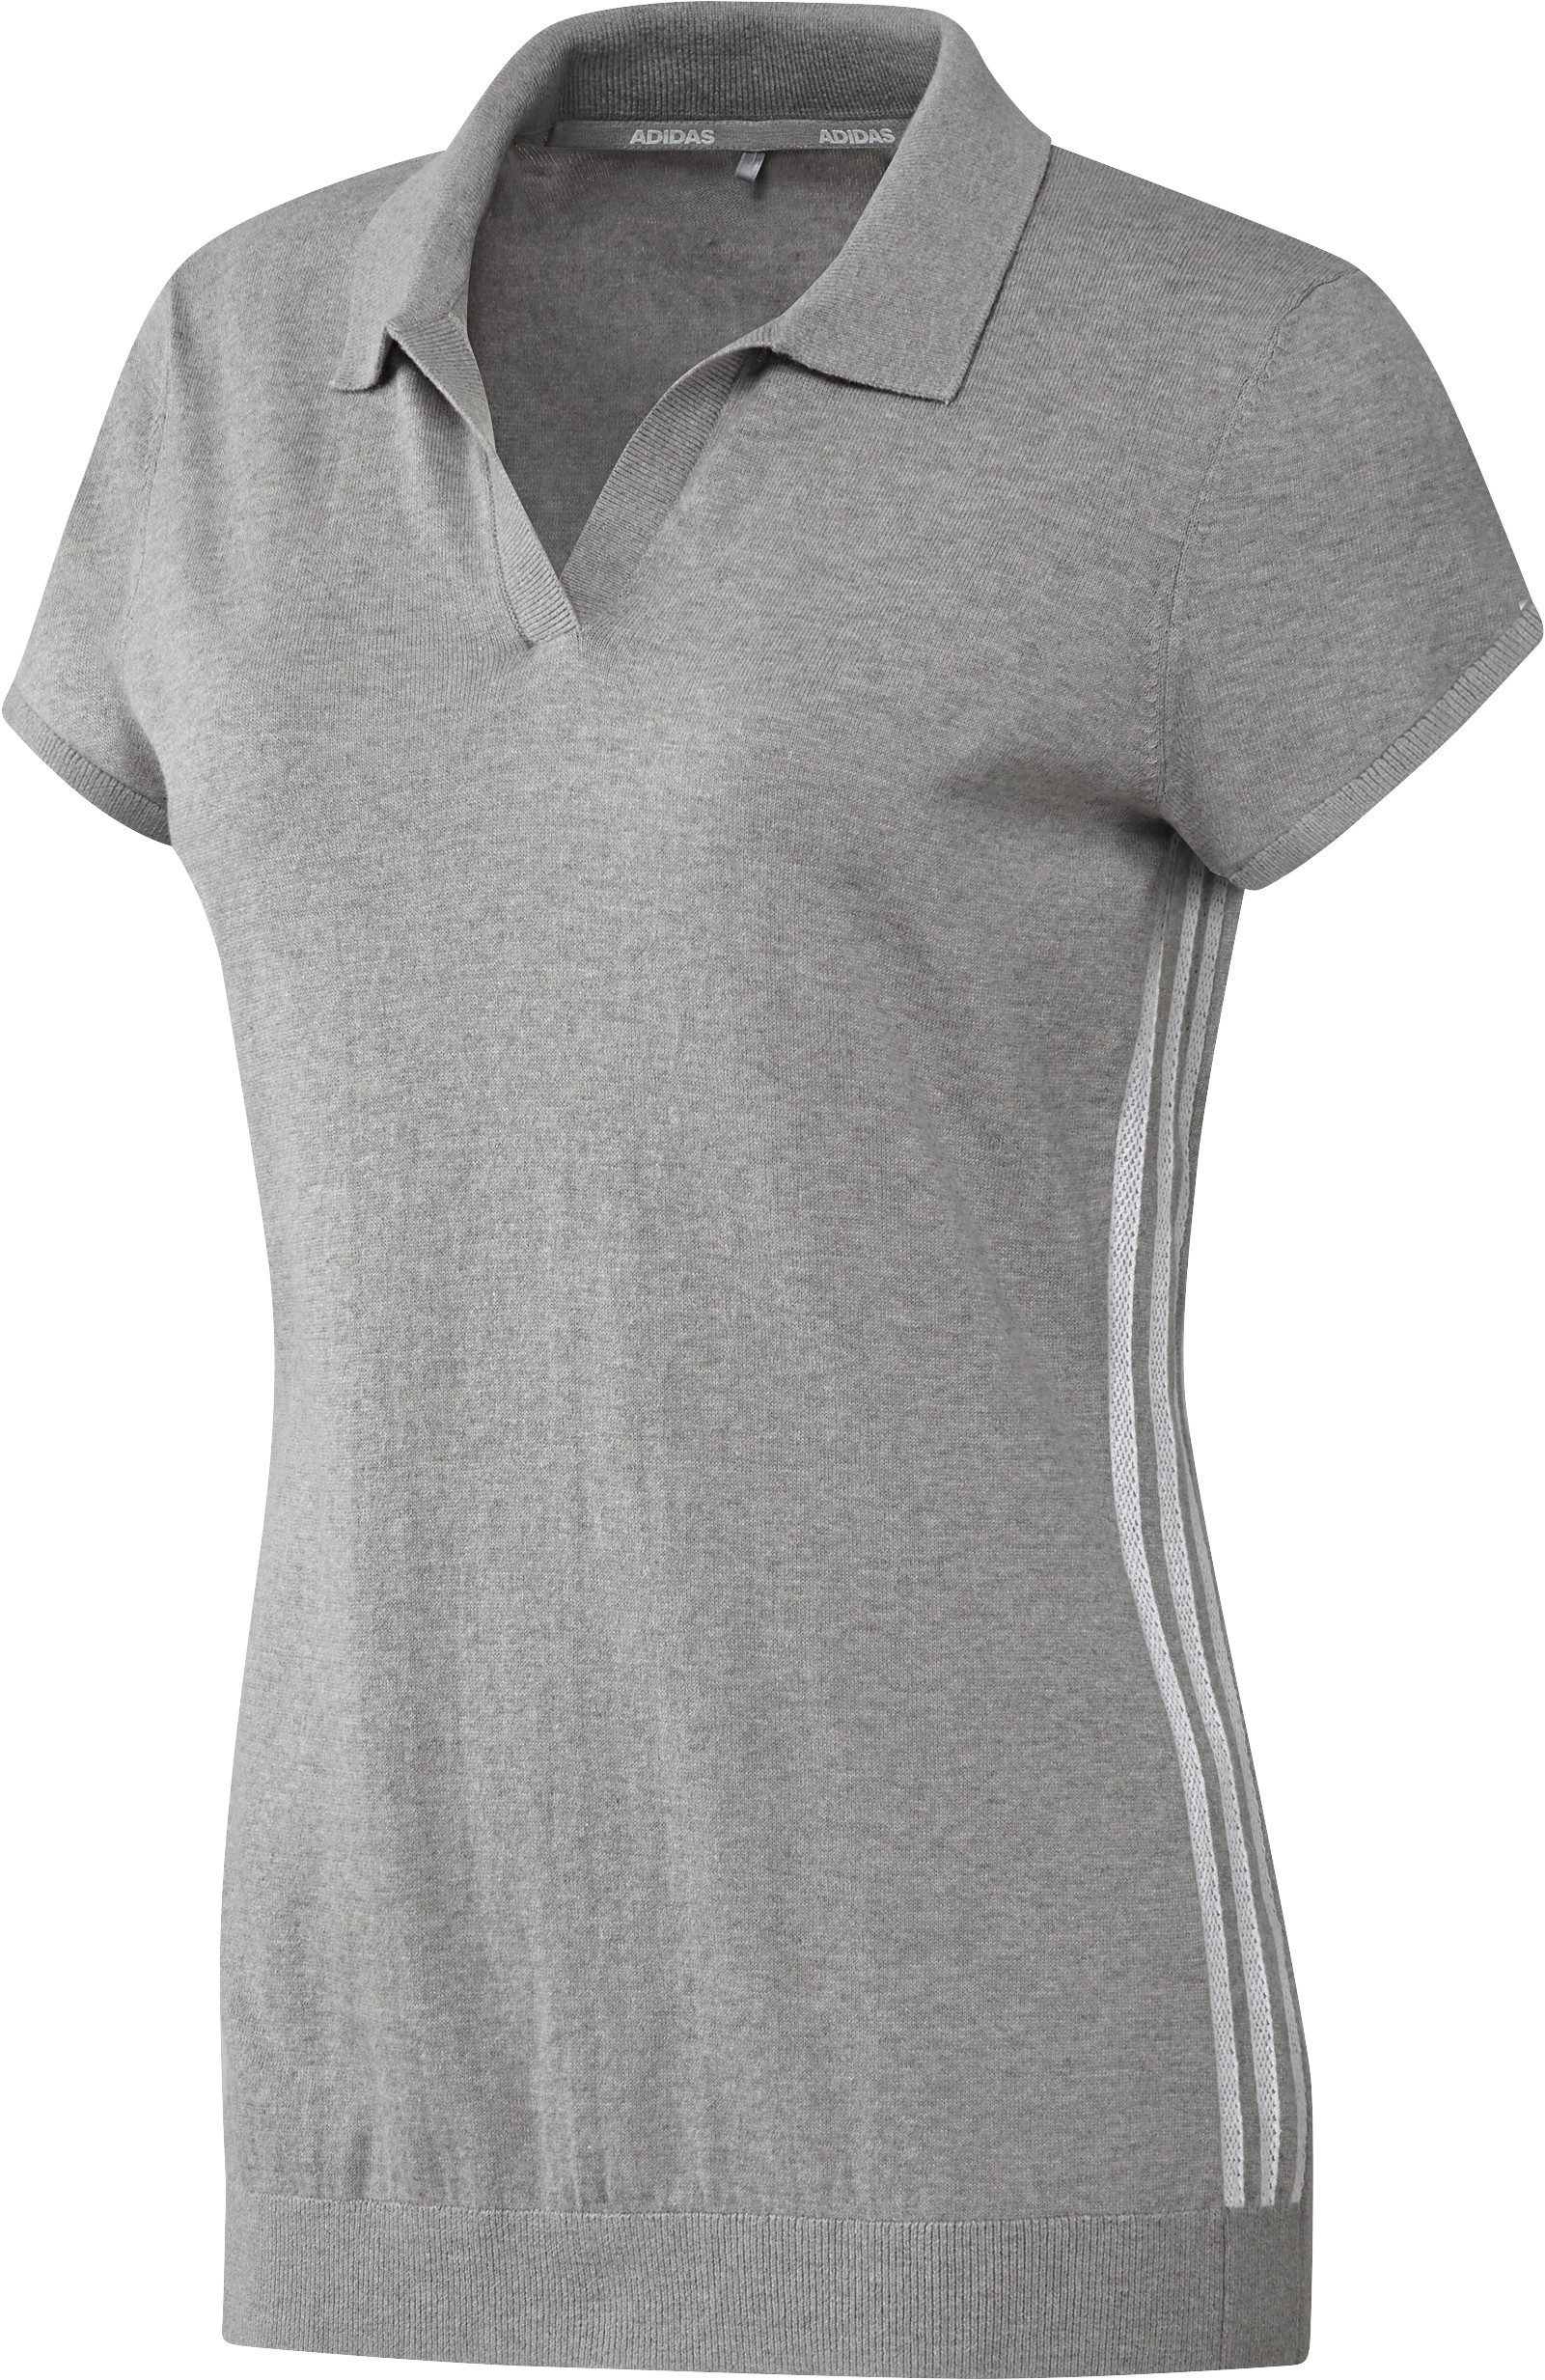 golfpolo SS Performance ladies grey